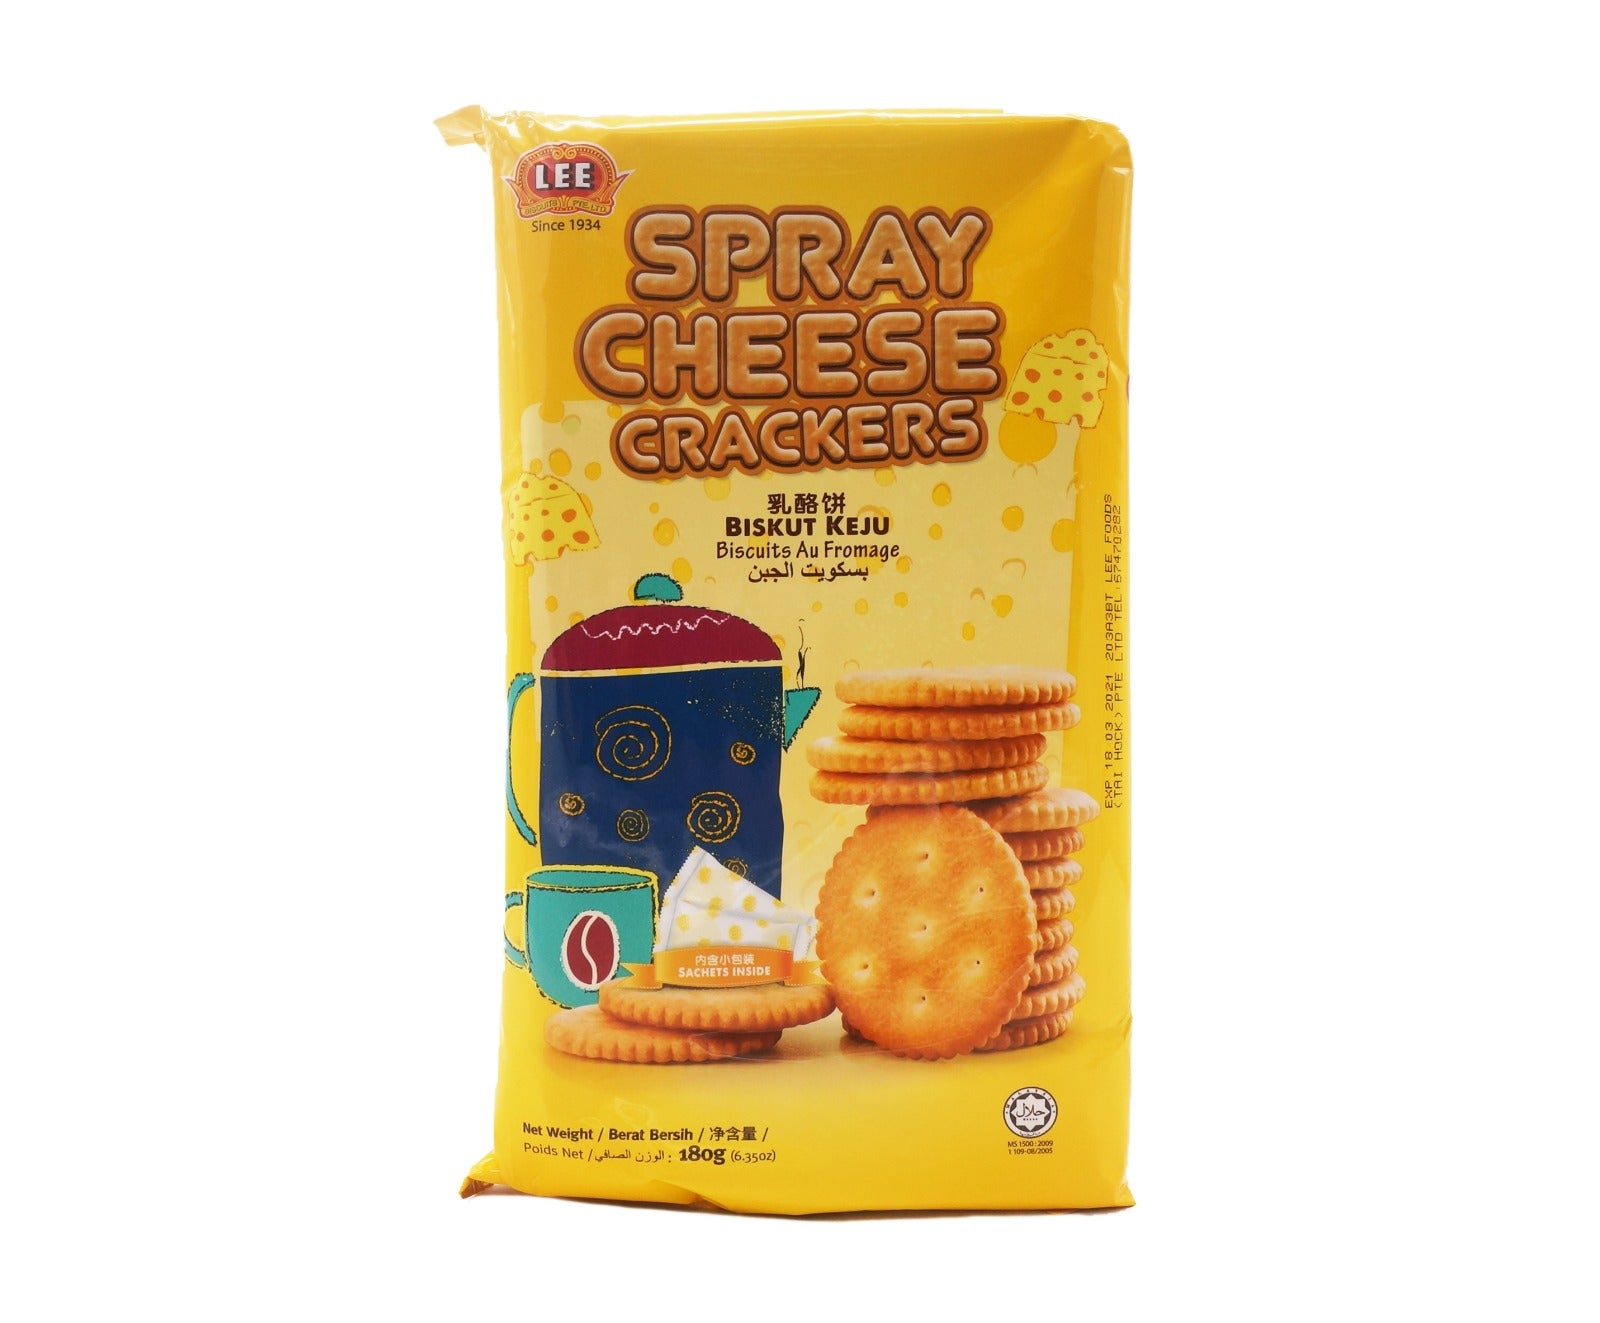 Lee Spray Cheese Crackers (180g – Piece)